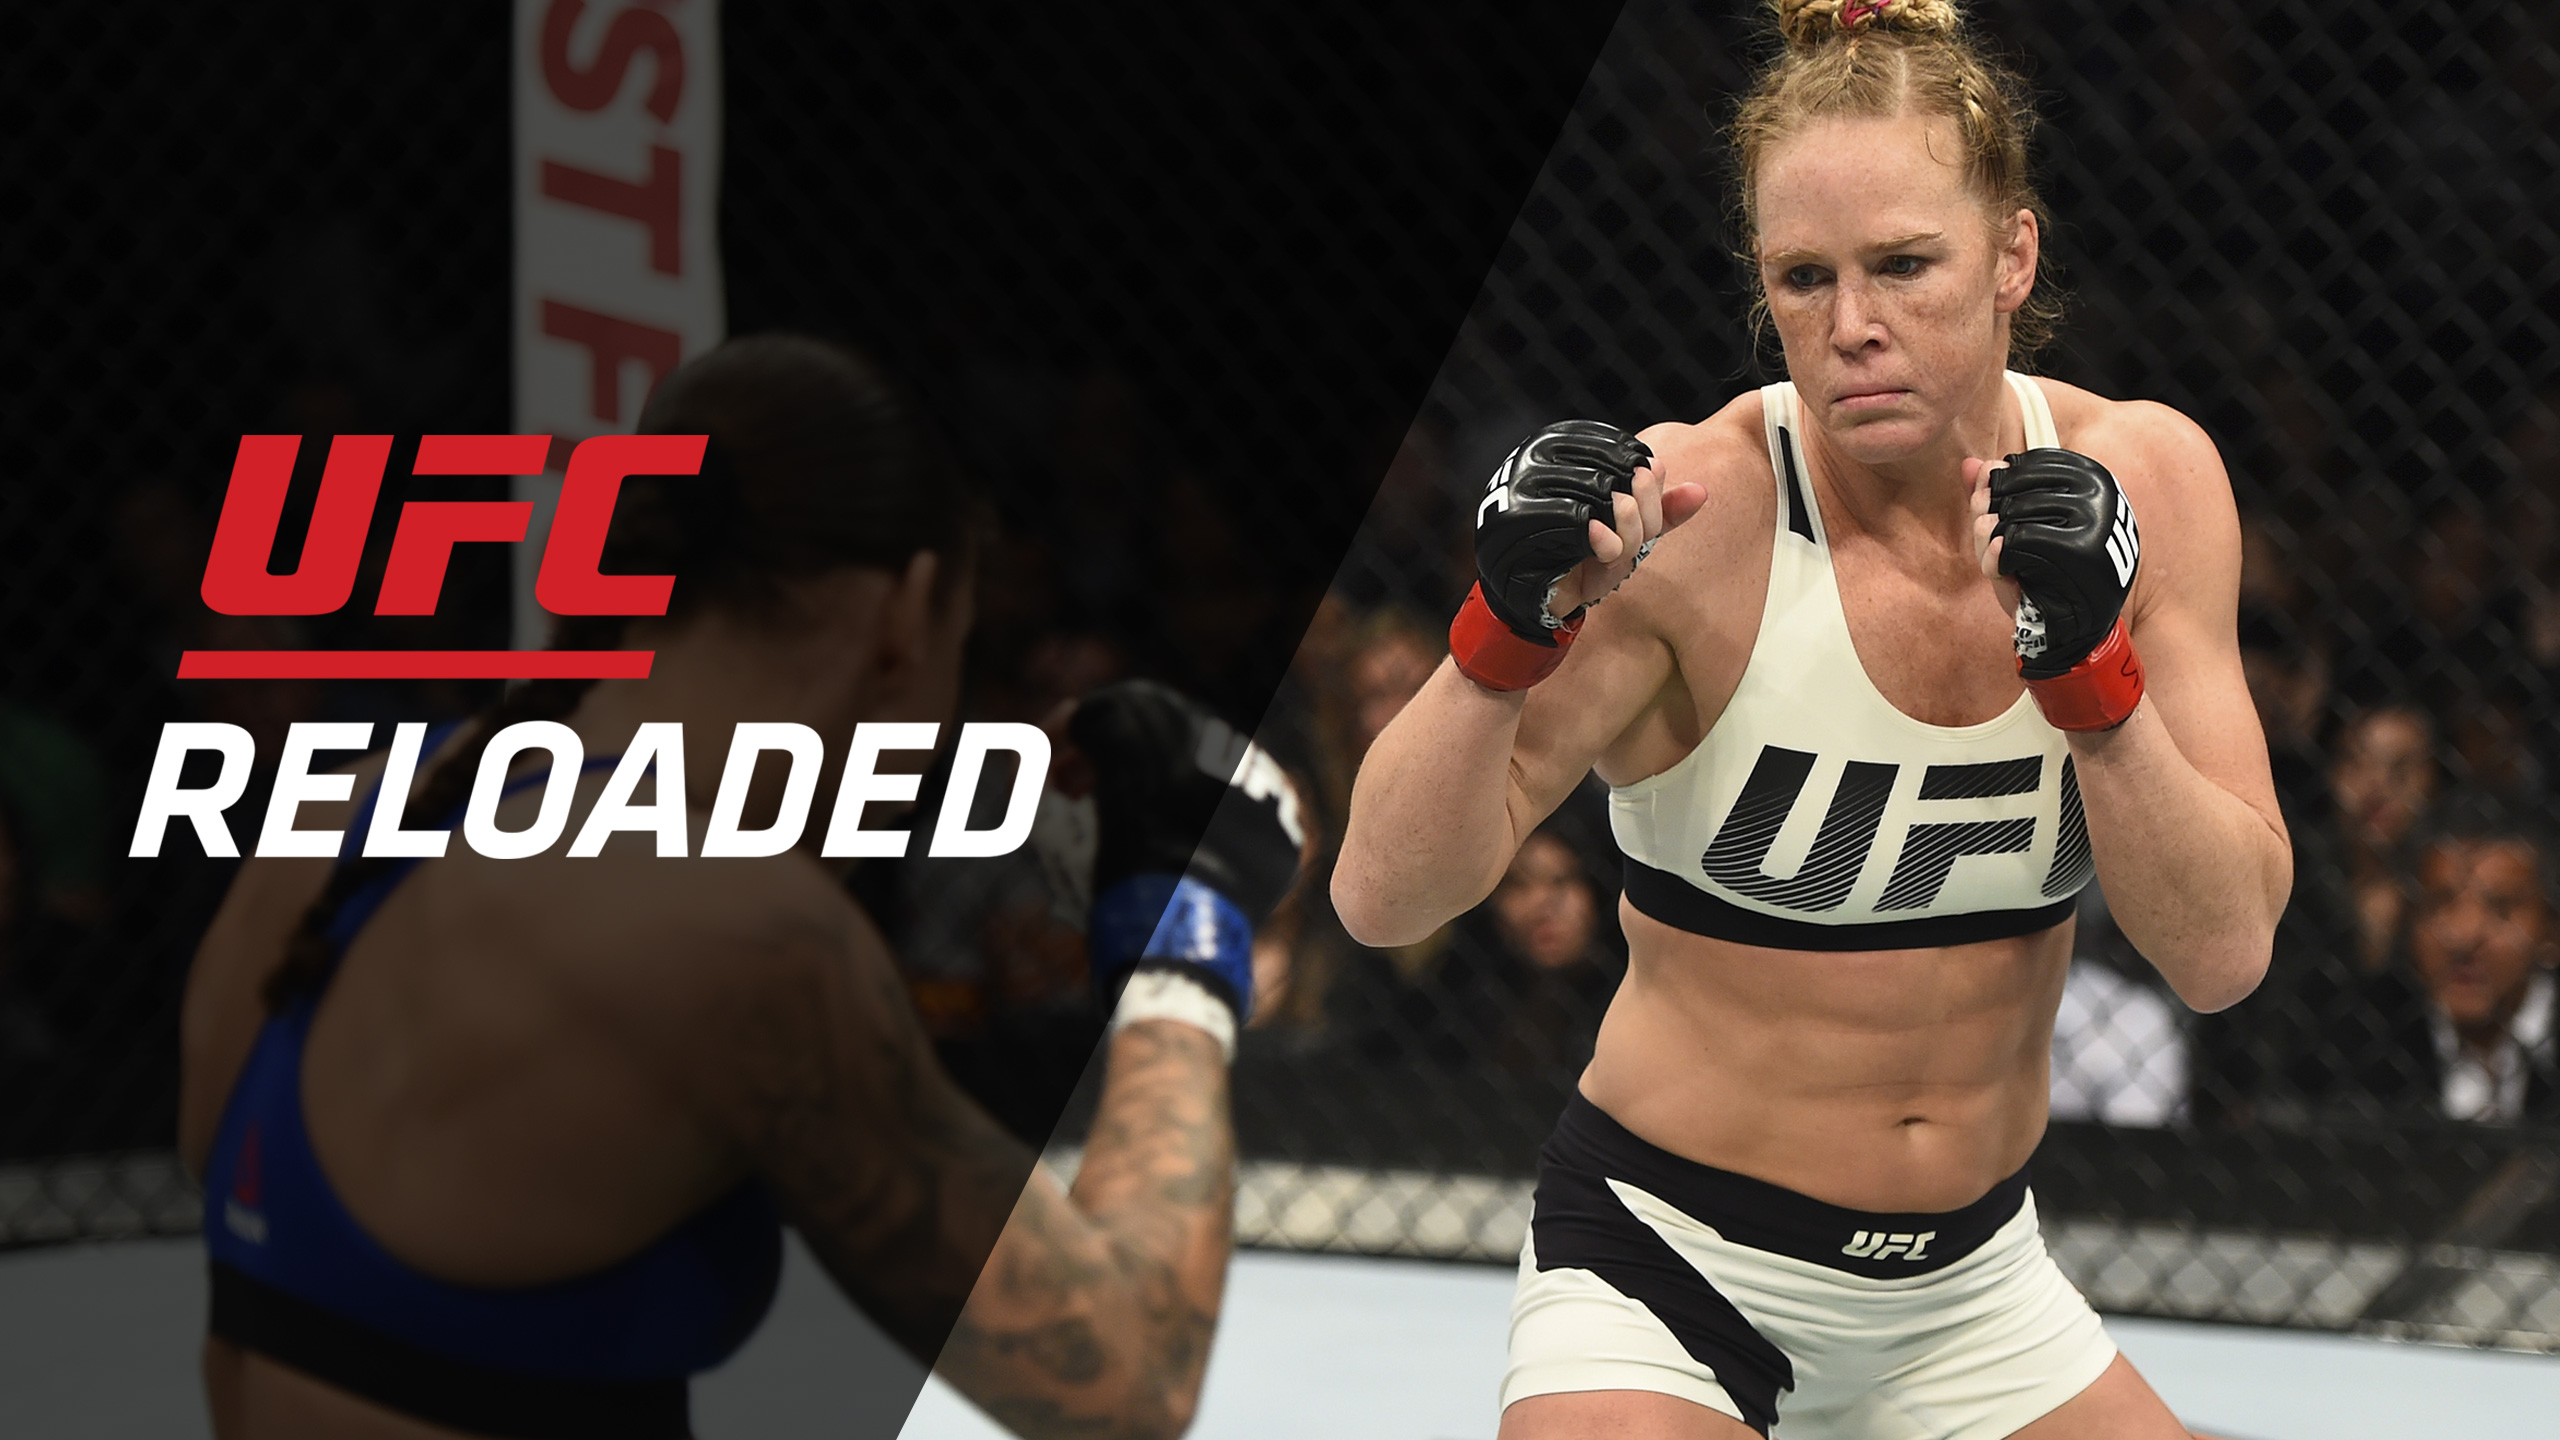 In Spanish - UFC Reloaded: 208: Holm vs. De Randamie